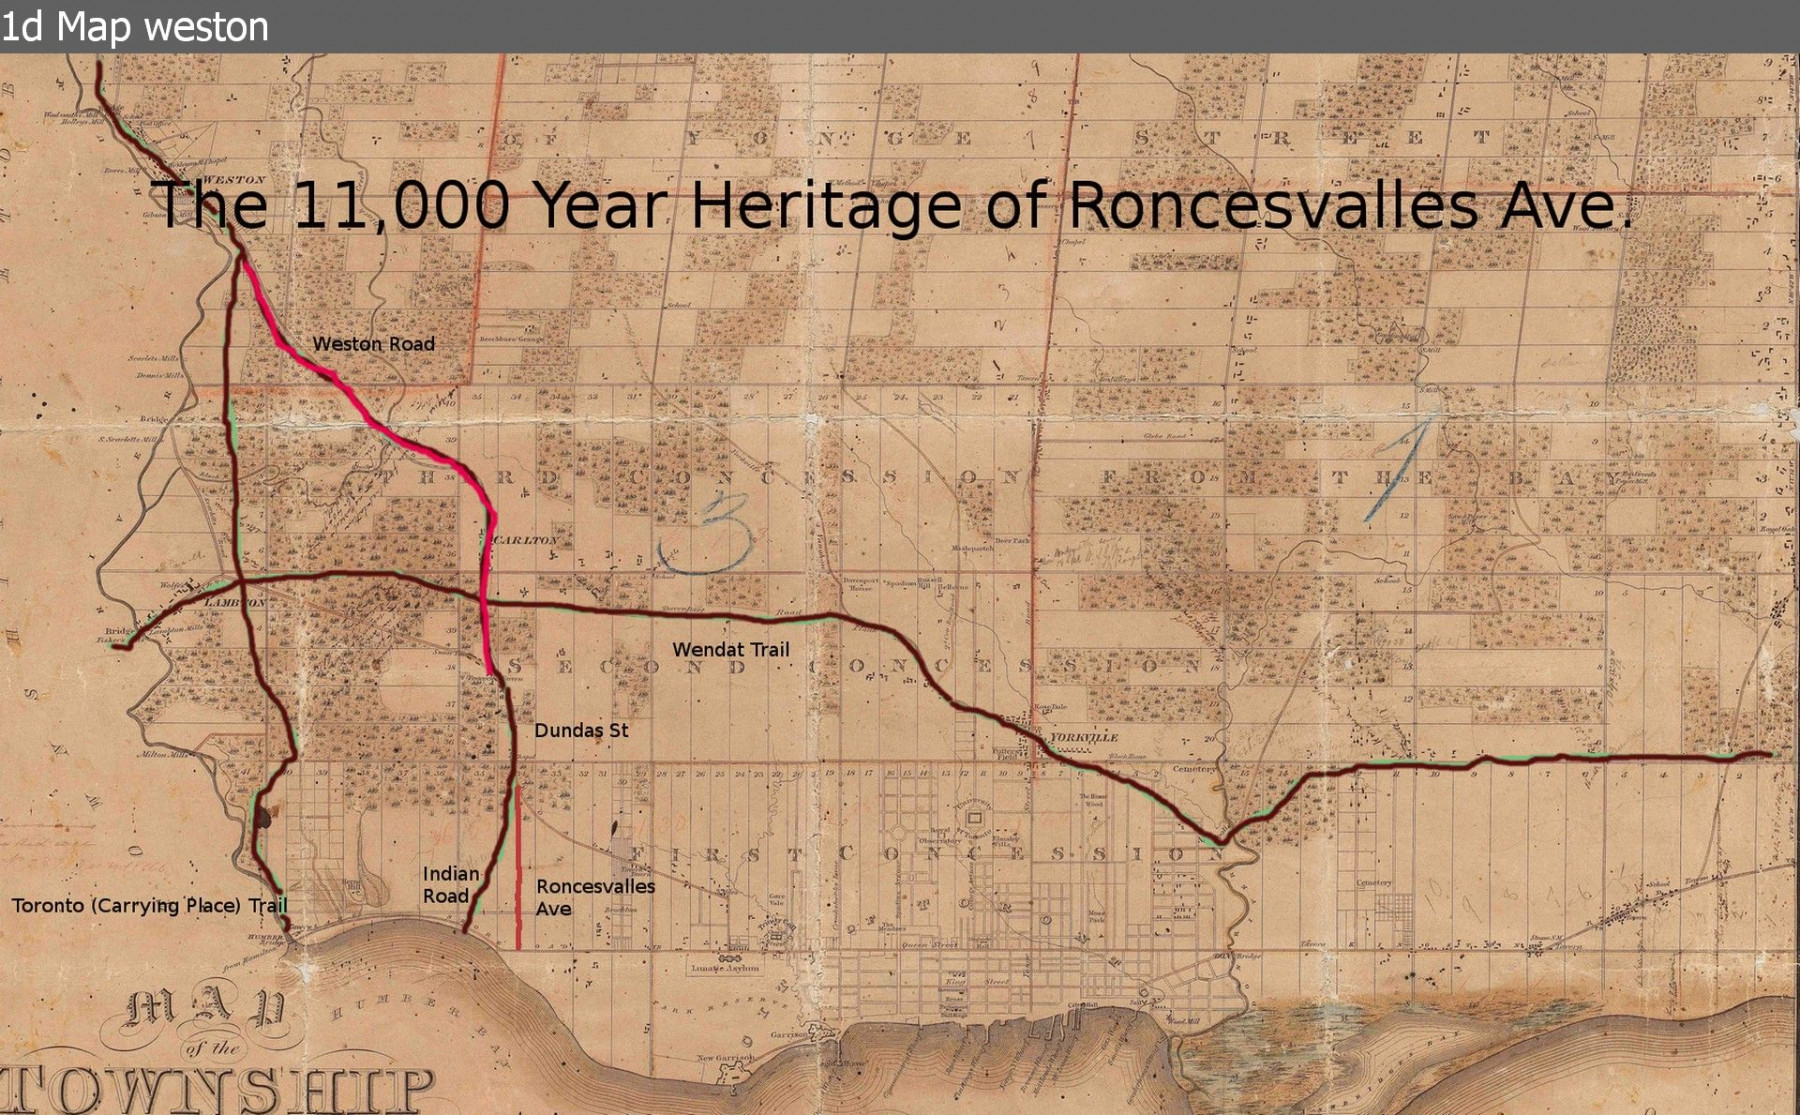 Sunnyside Historical Society Serving Parkdale Roncesvalles Weston Wiring Diagram 1d Map